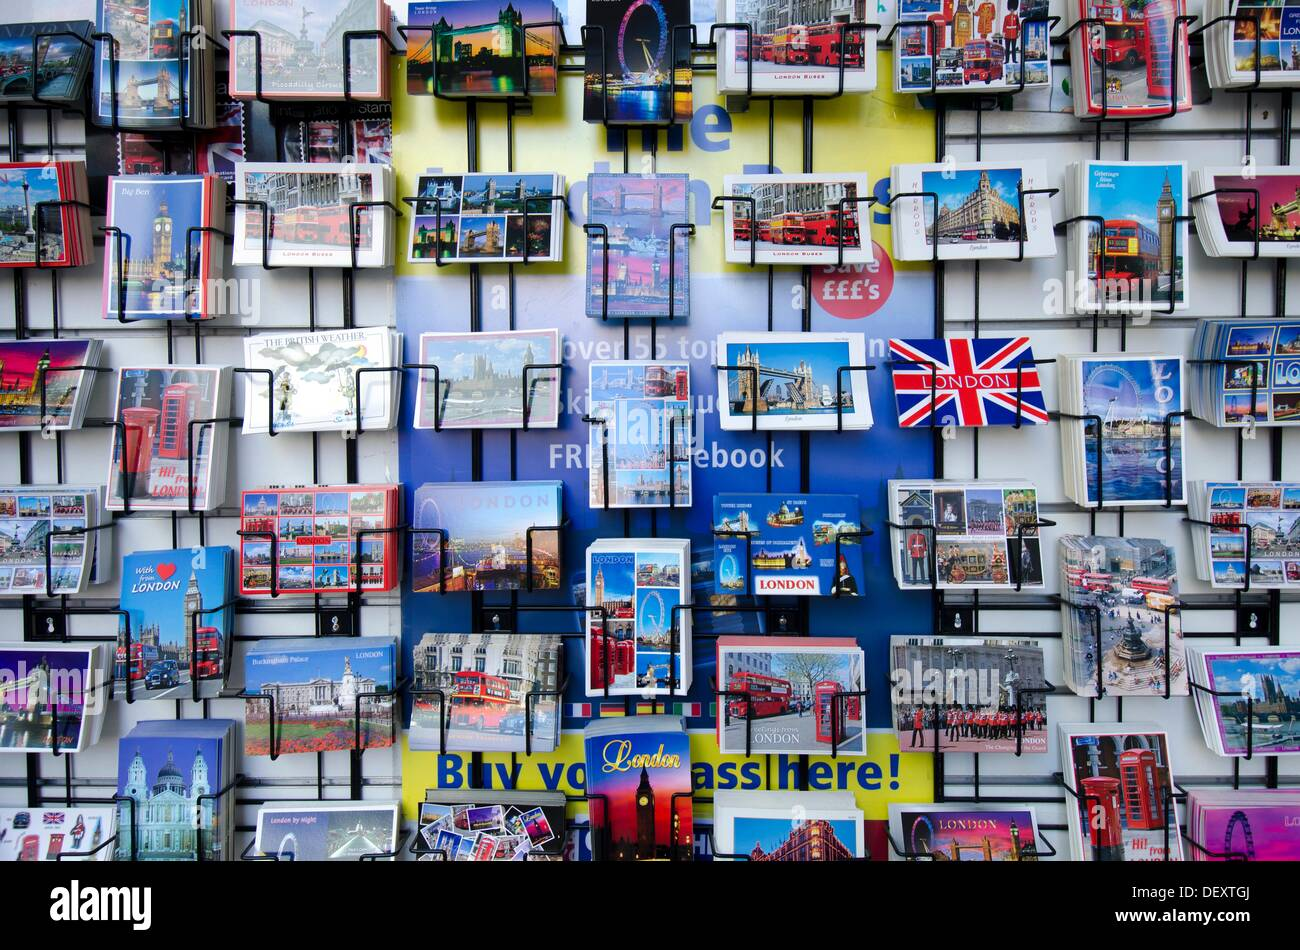 Postcards, city center, London, England, uk - Stock Image